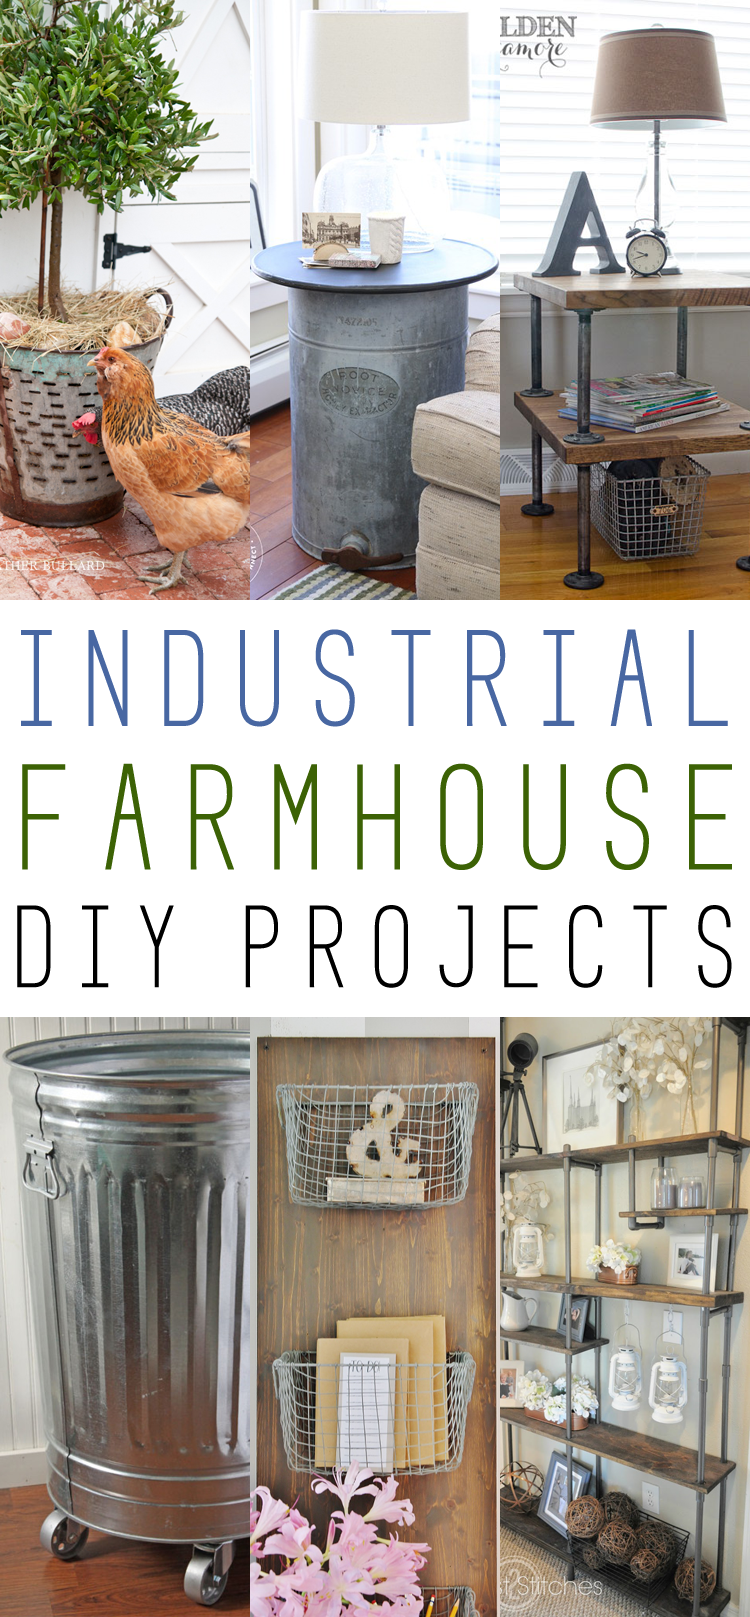 Farmhouse Fridays Industrial Farmhouse DIY Projects